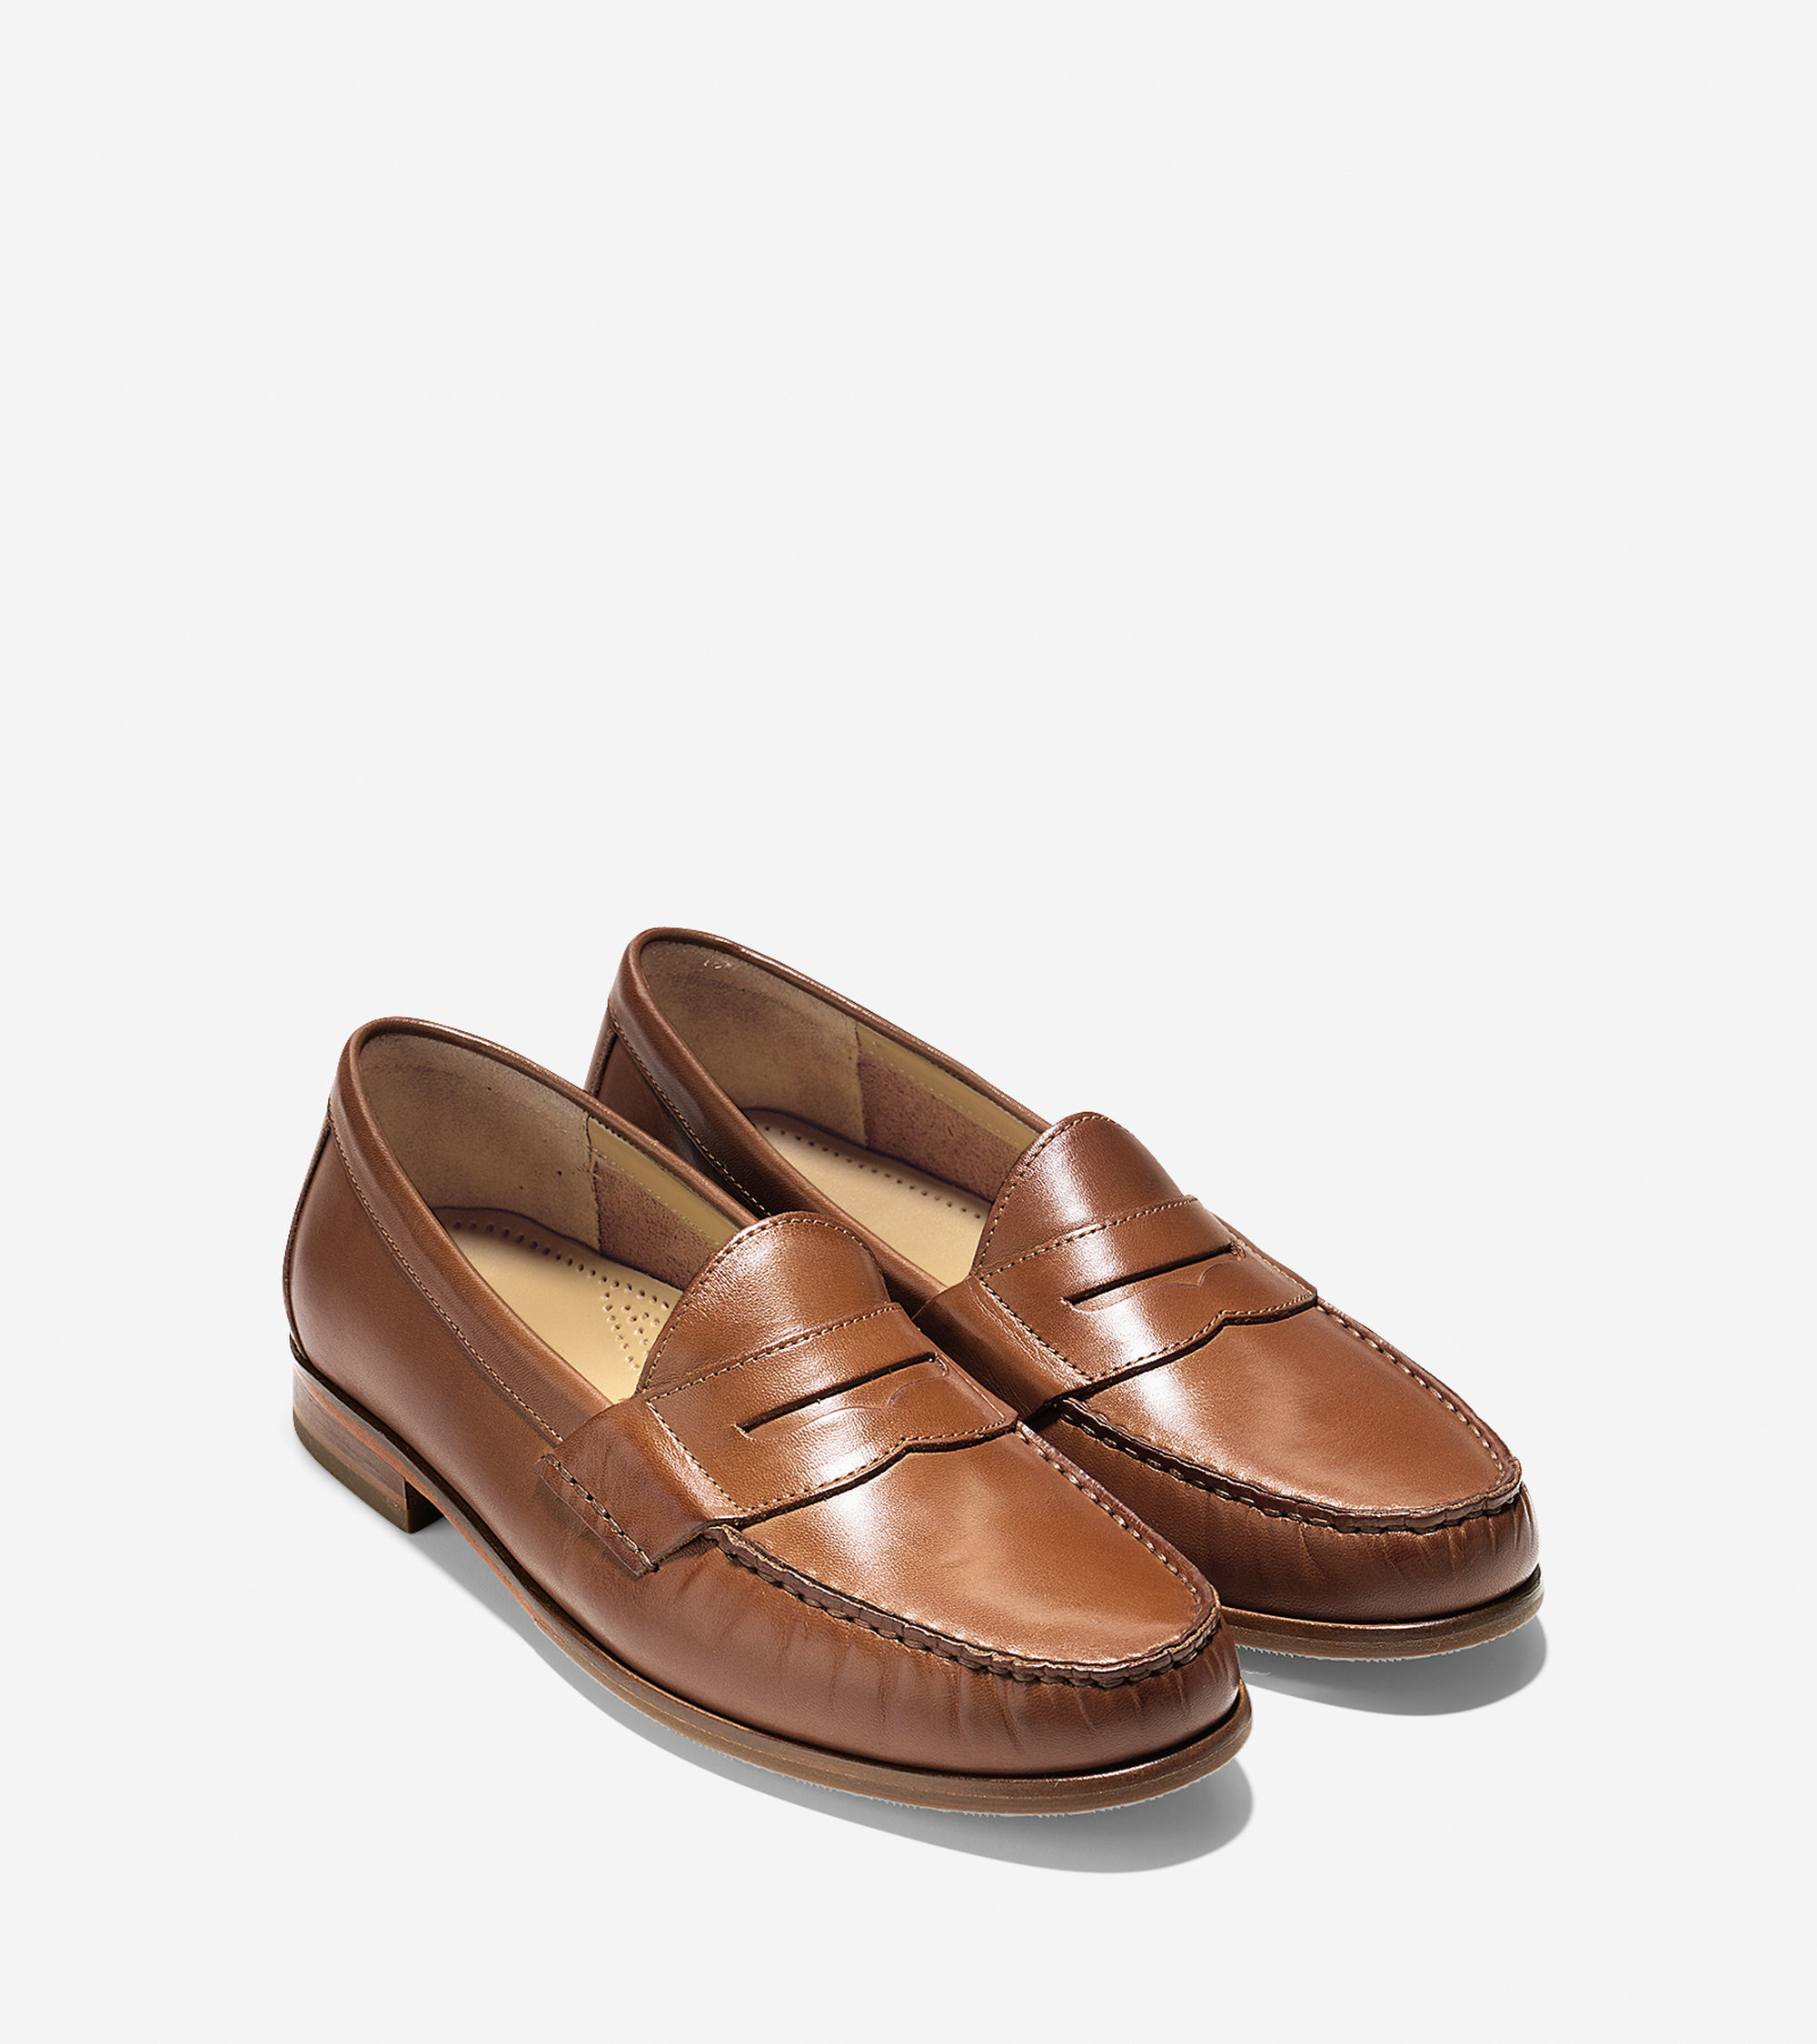 Lyst - Cole haan Ascot Penny Loafer in Brown for Men